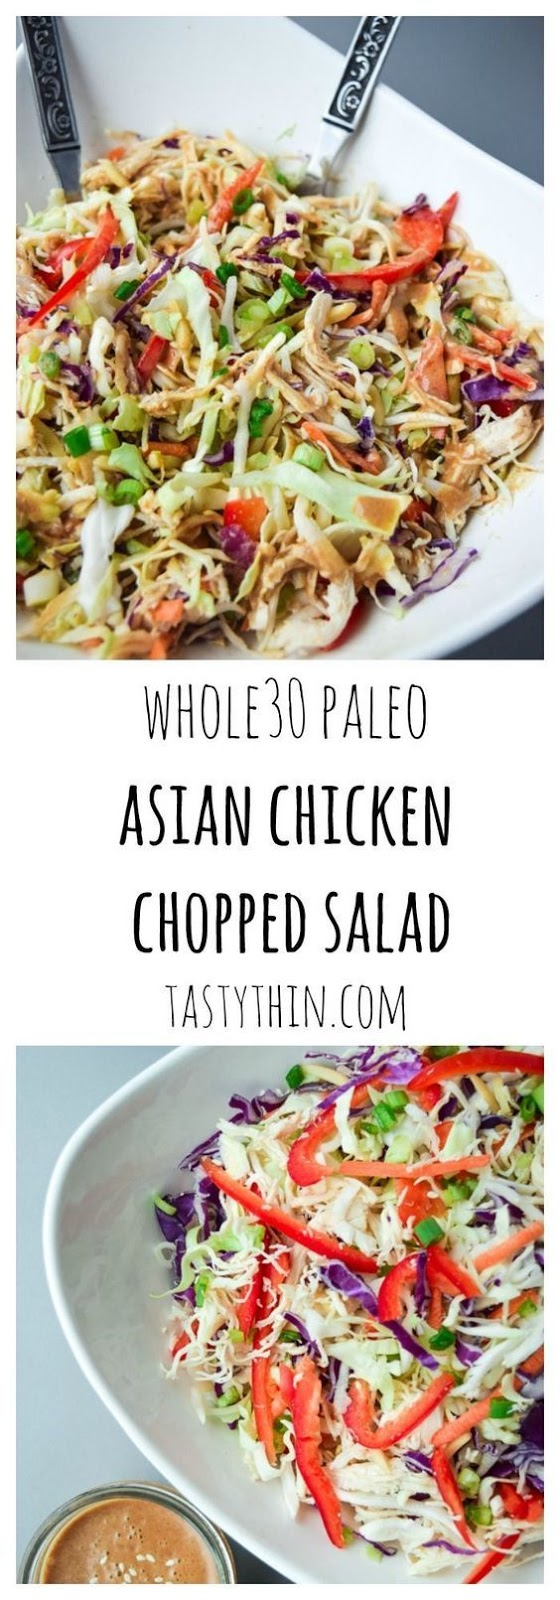 Asian Chicken Chopped Salad (Whole30 Paleo)